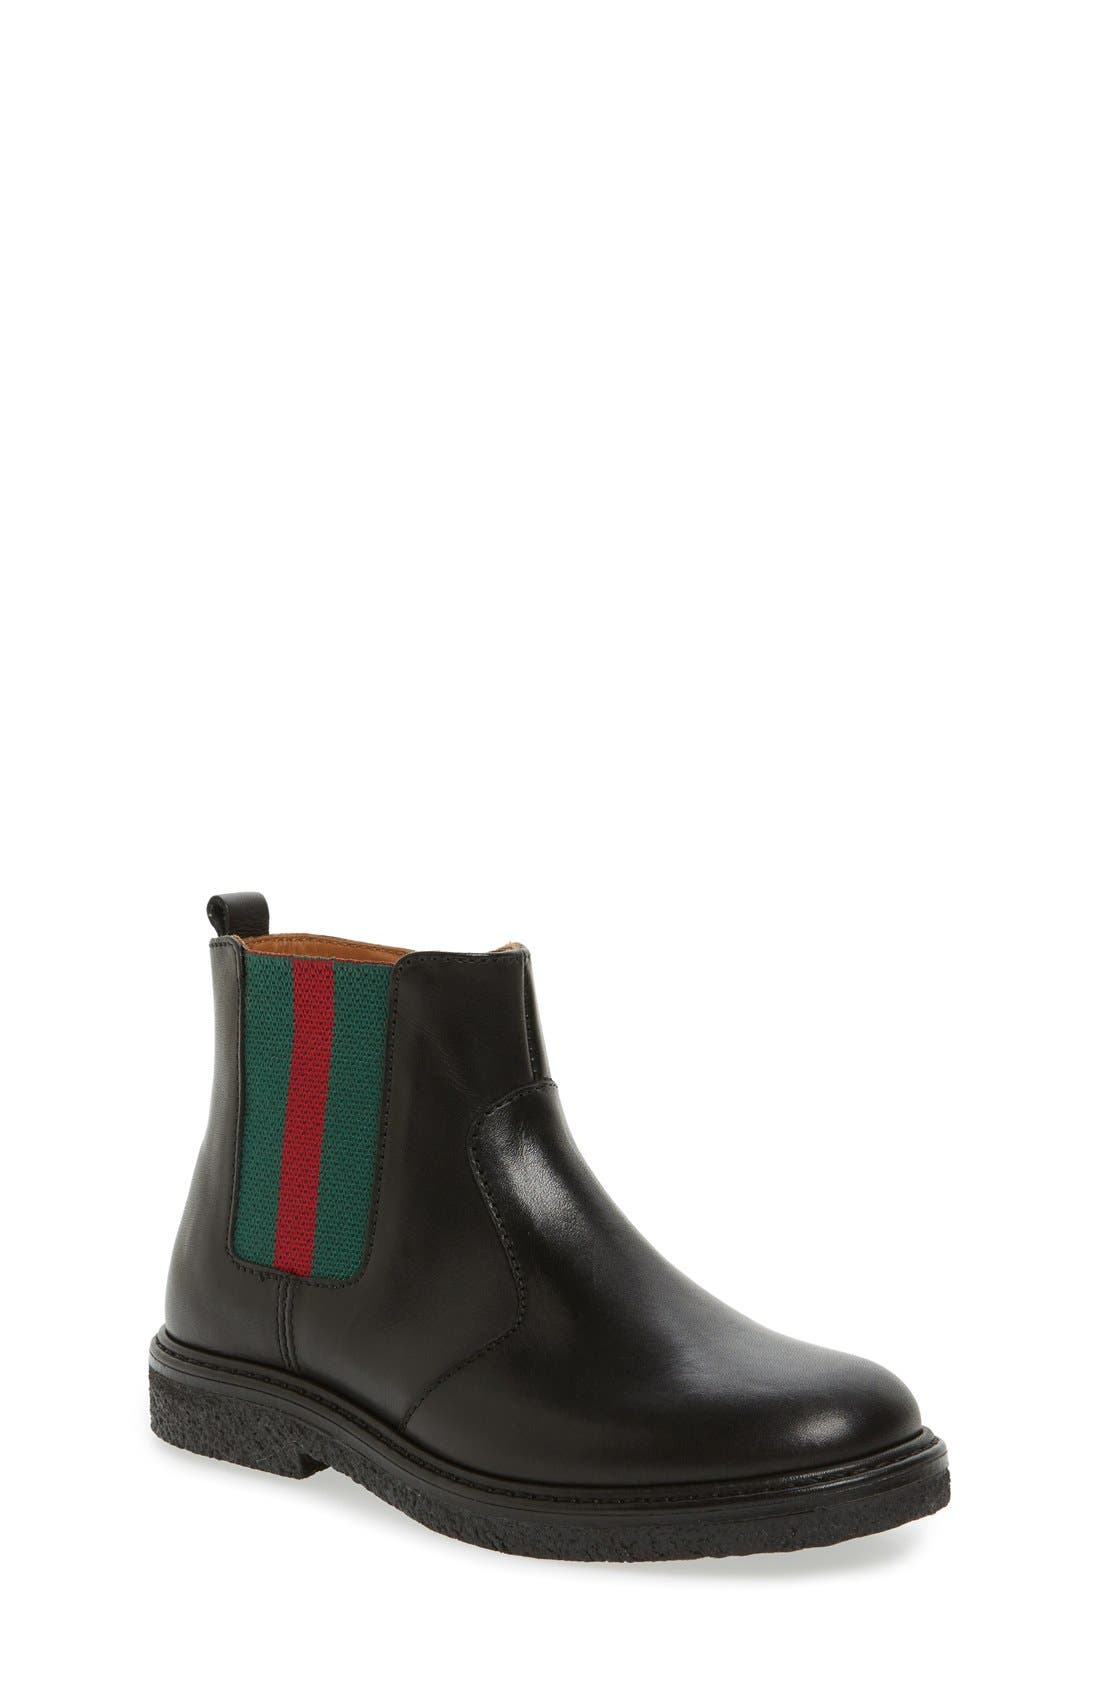 'Joshua' Chelsea Boot,                         Main,                         color, 001